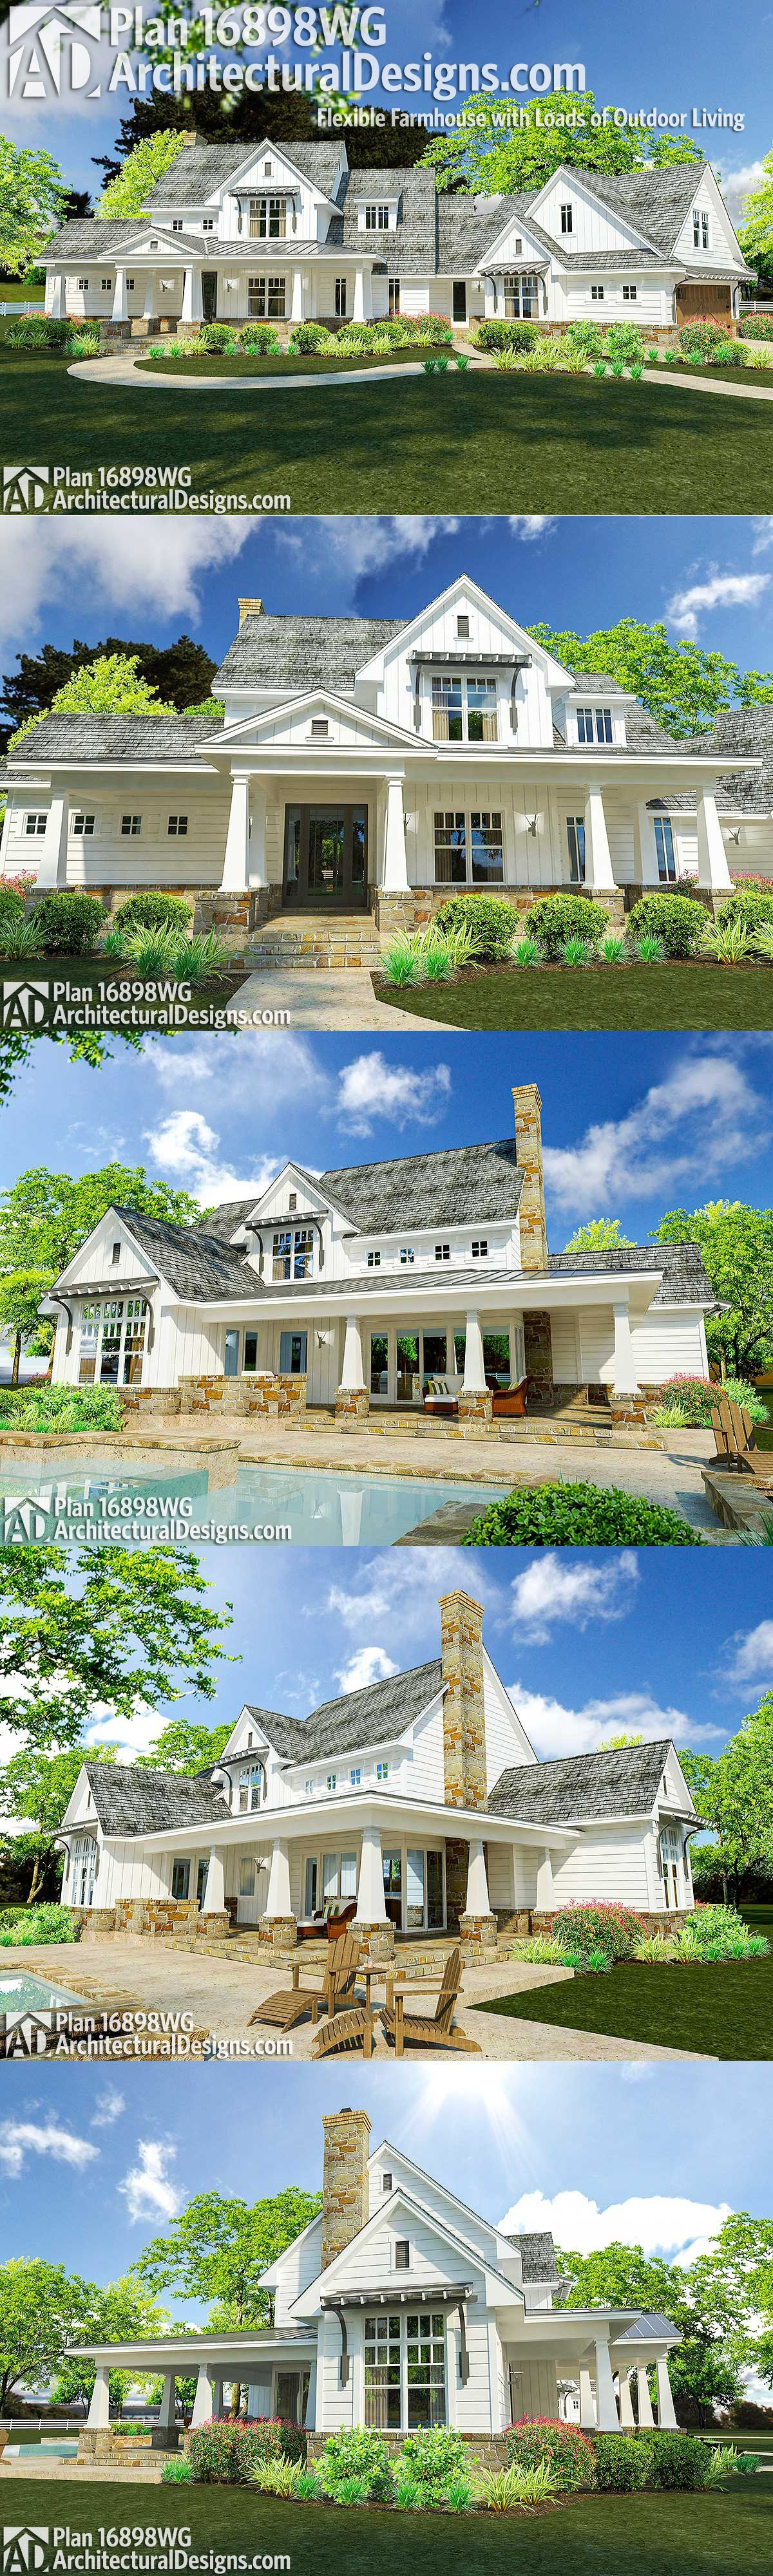 plan 16898wg flexible farmhouse with loads of outdoor living